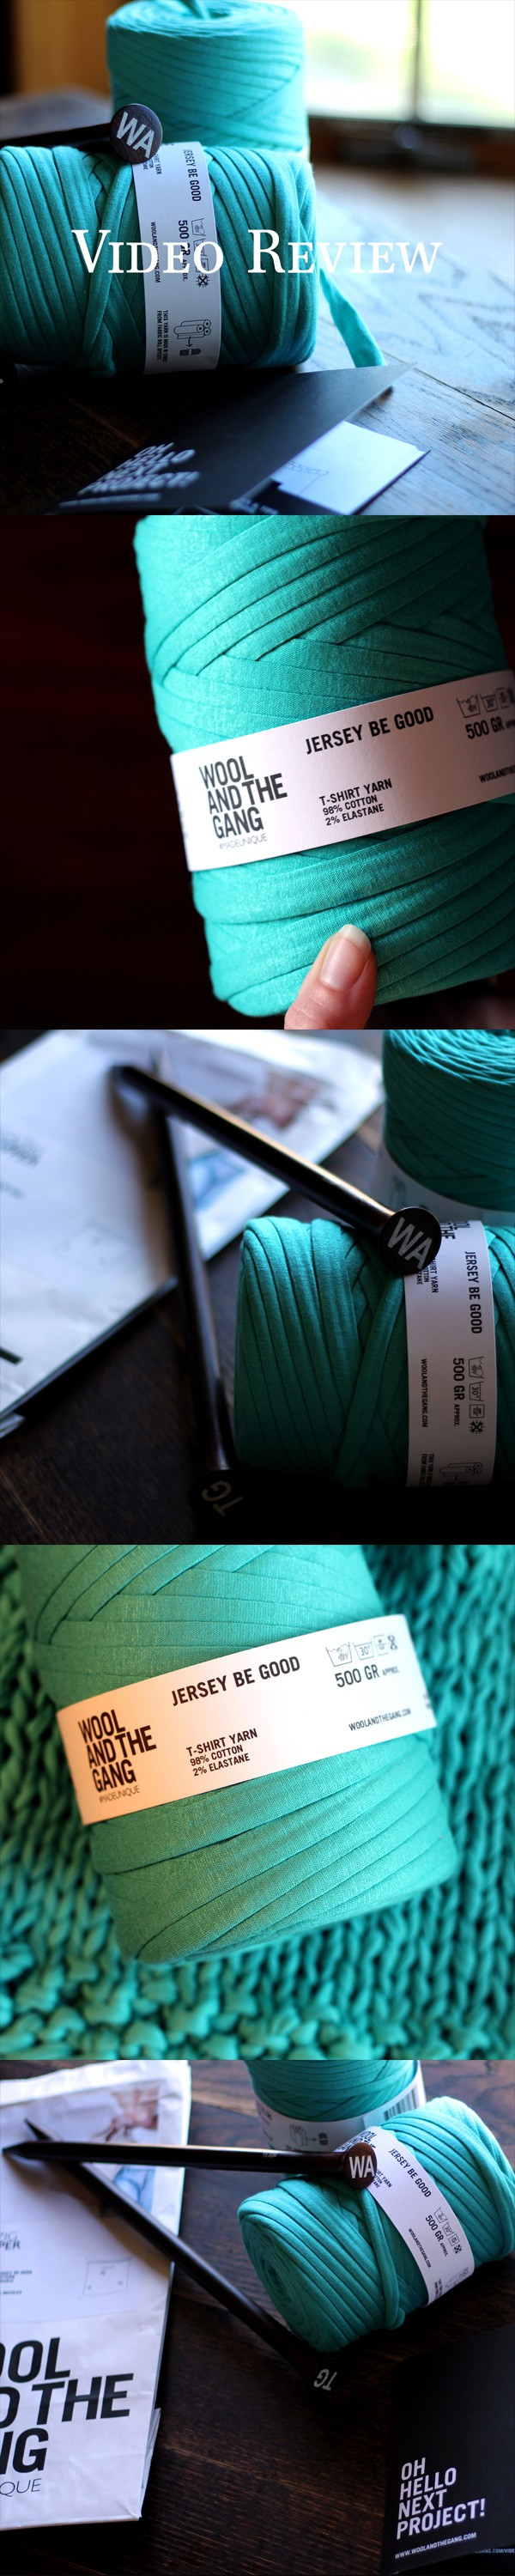 Jersey Be Good by Wool and the Gang Yarn Review Video by Brome Fields